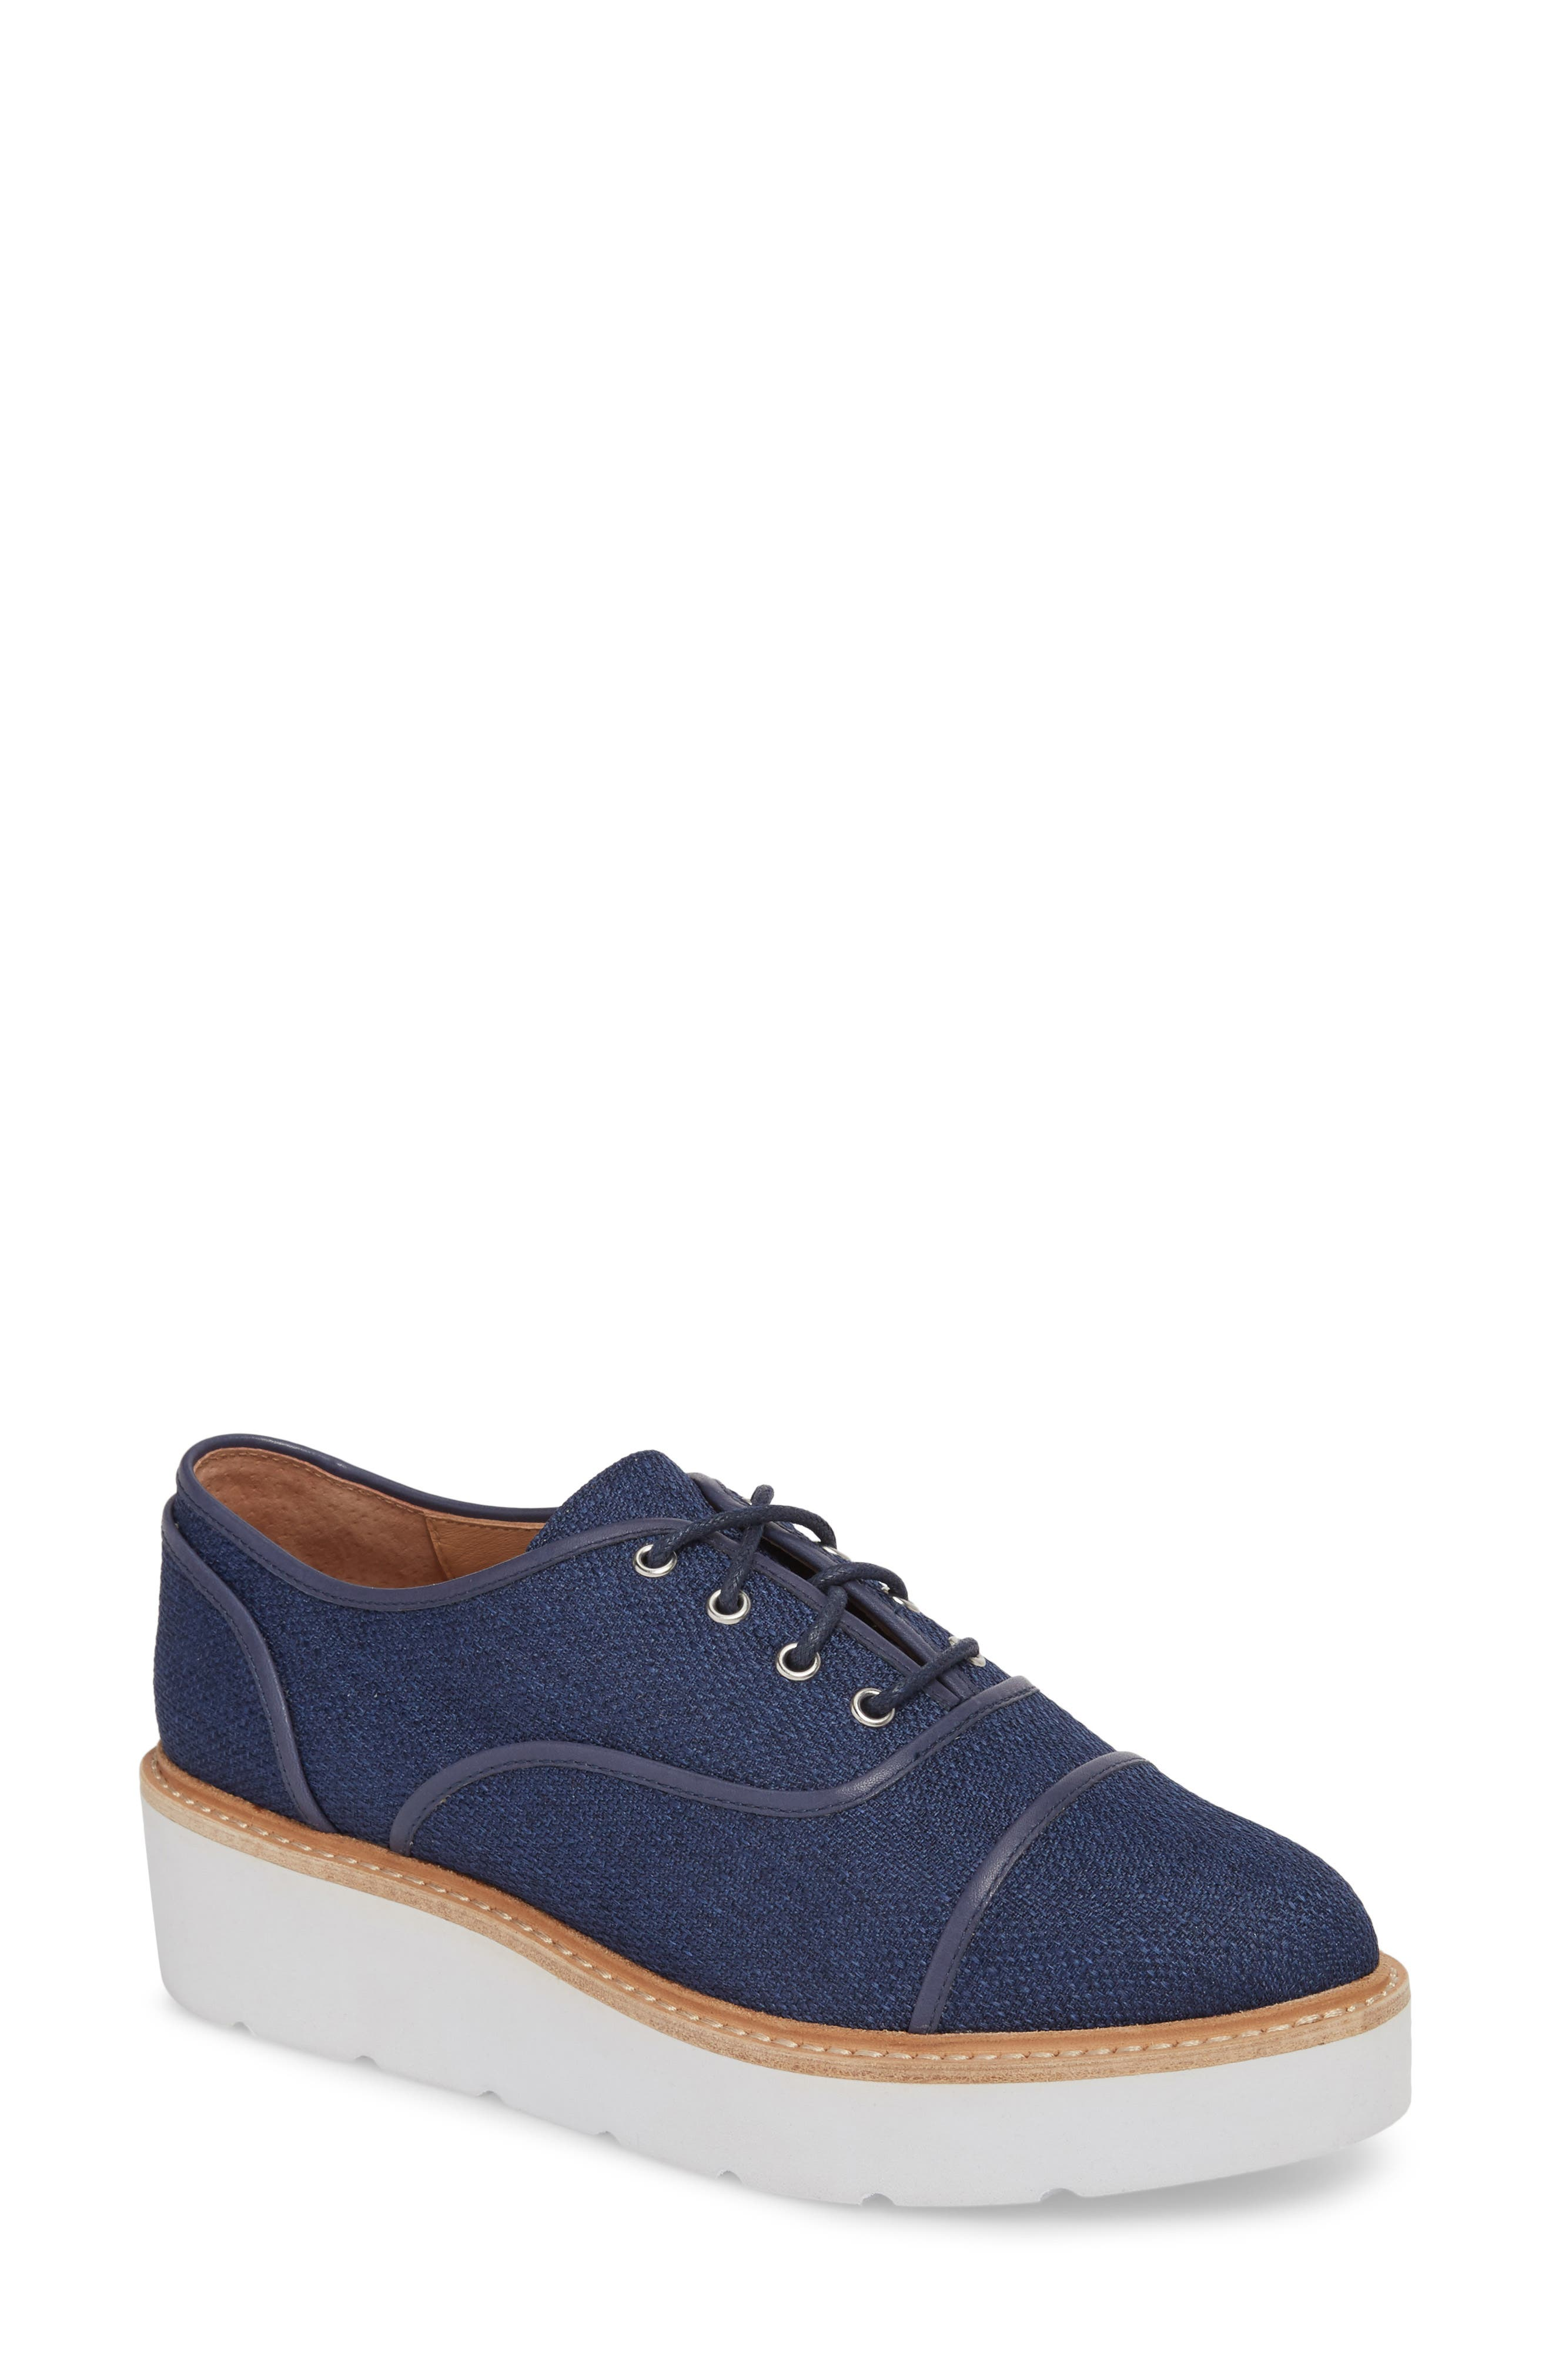 Mavis Cap Toe Platform Sneaker,                             Main thumbnail 1, color,                             Blue Fabric